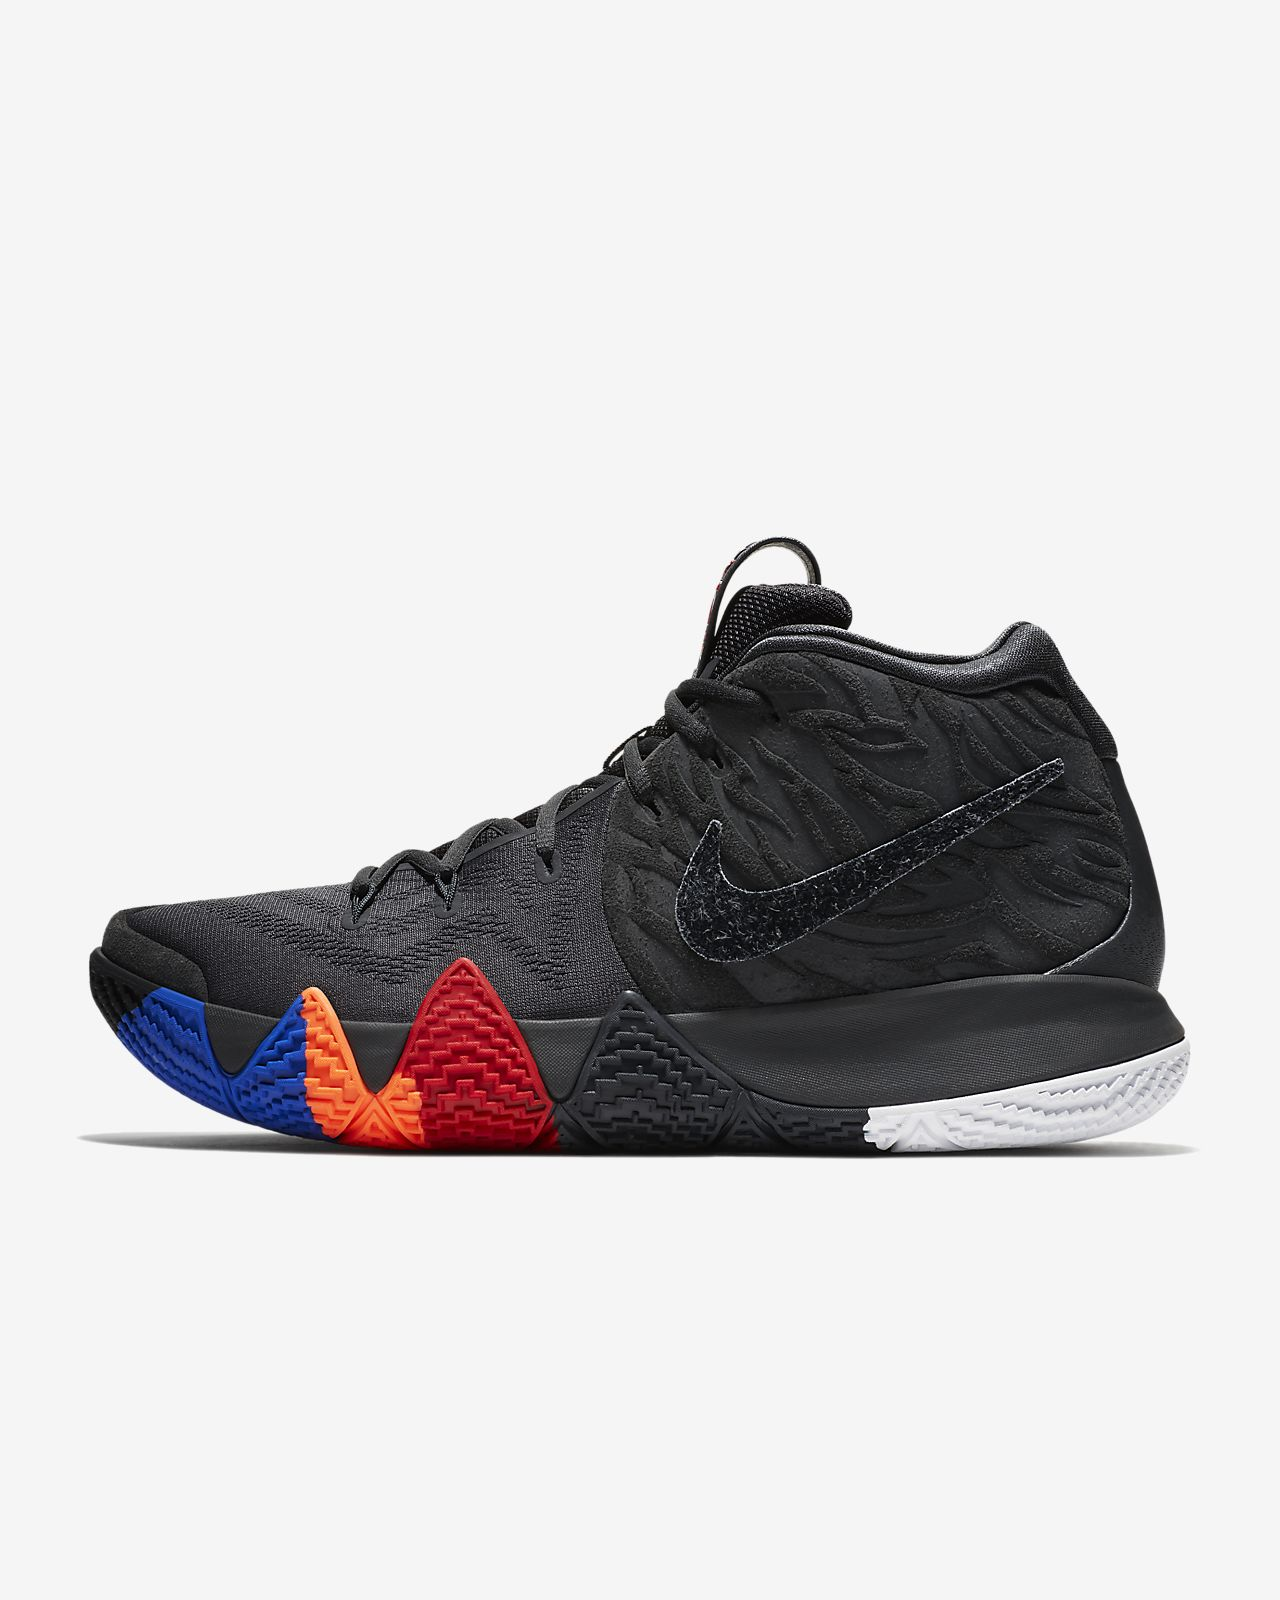 best cheap 550a2 9ca3e Low Resolution Kyrie 4 Basketball Shoe Kyrie 4 Basketball Shoe